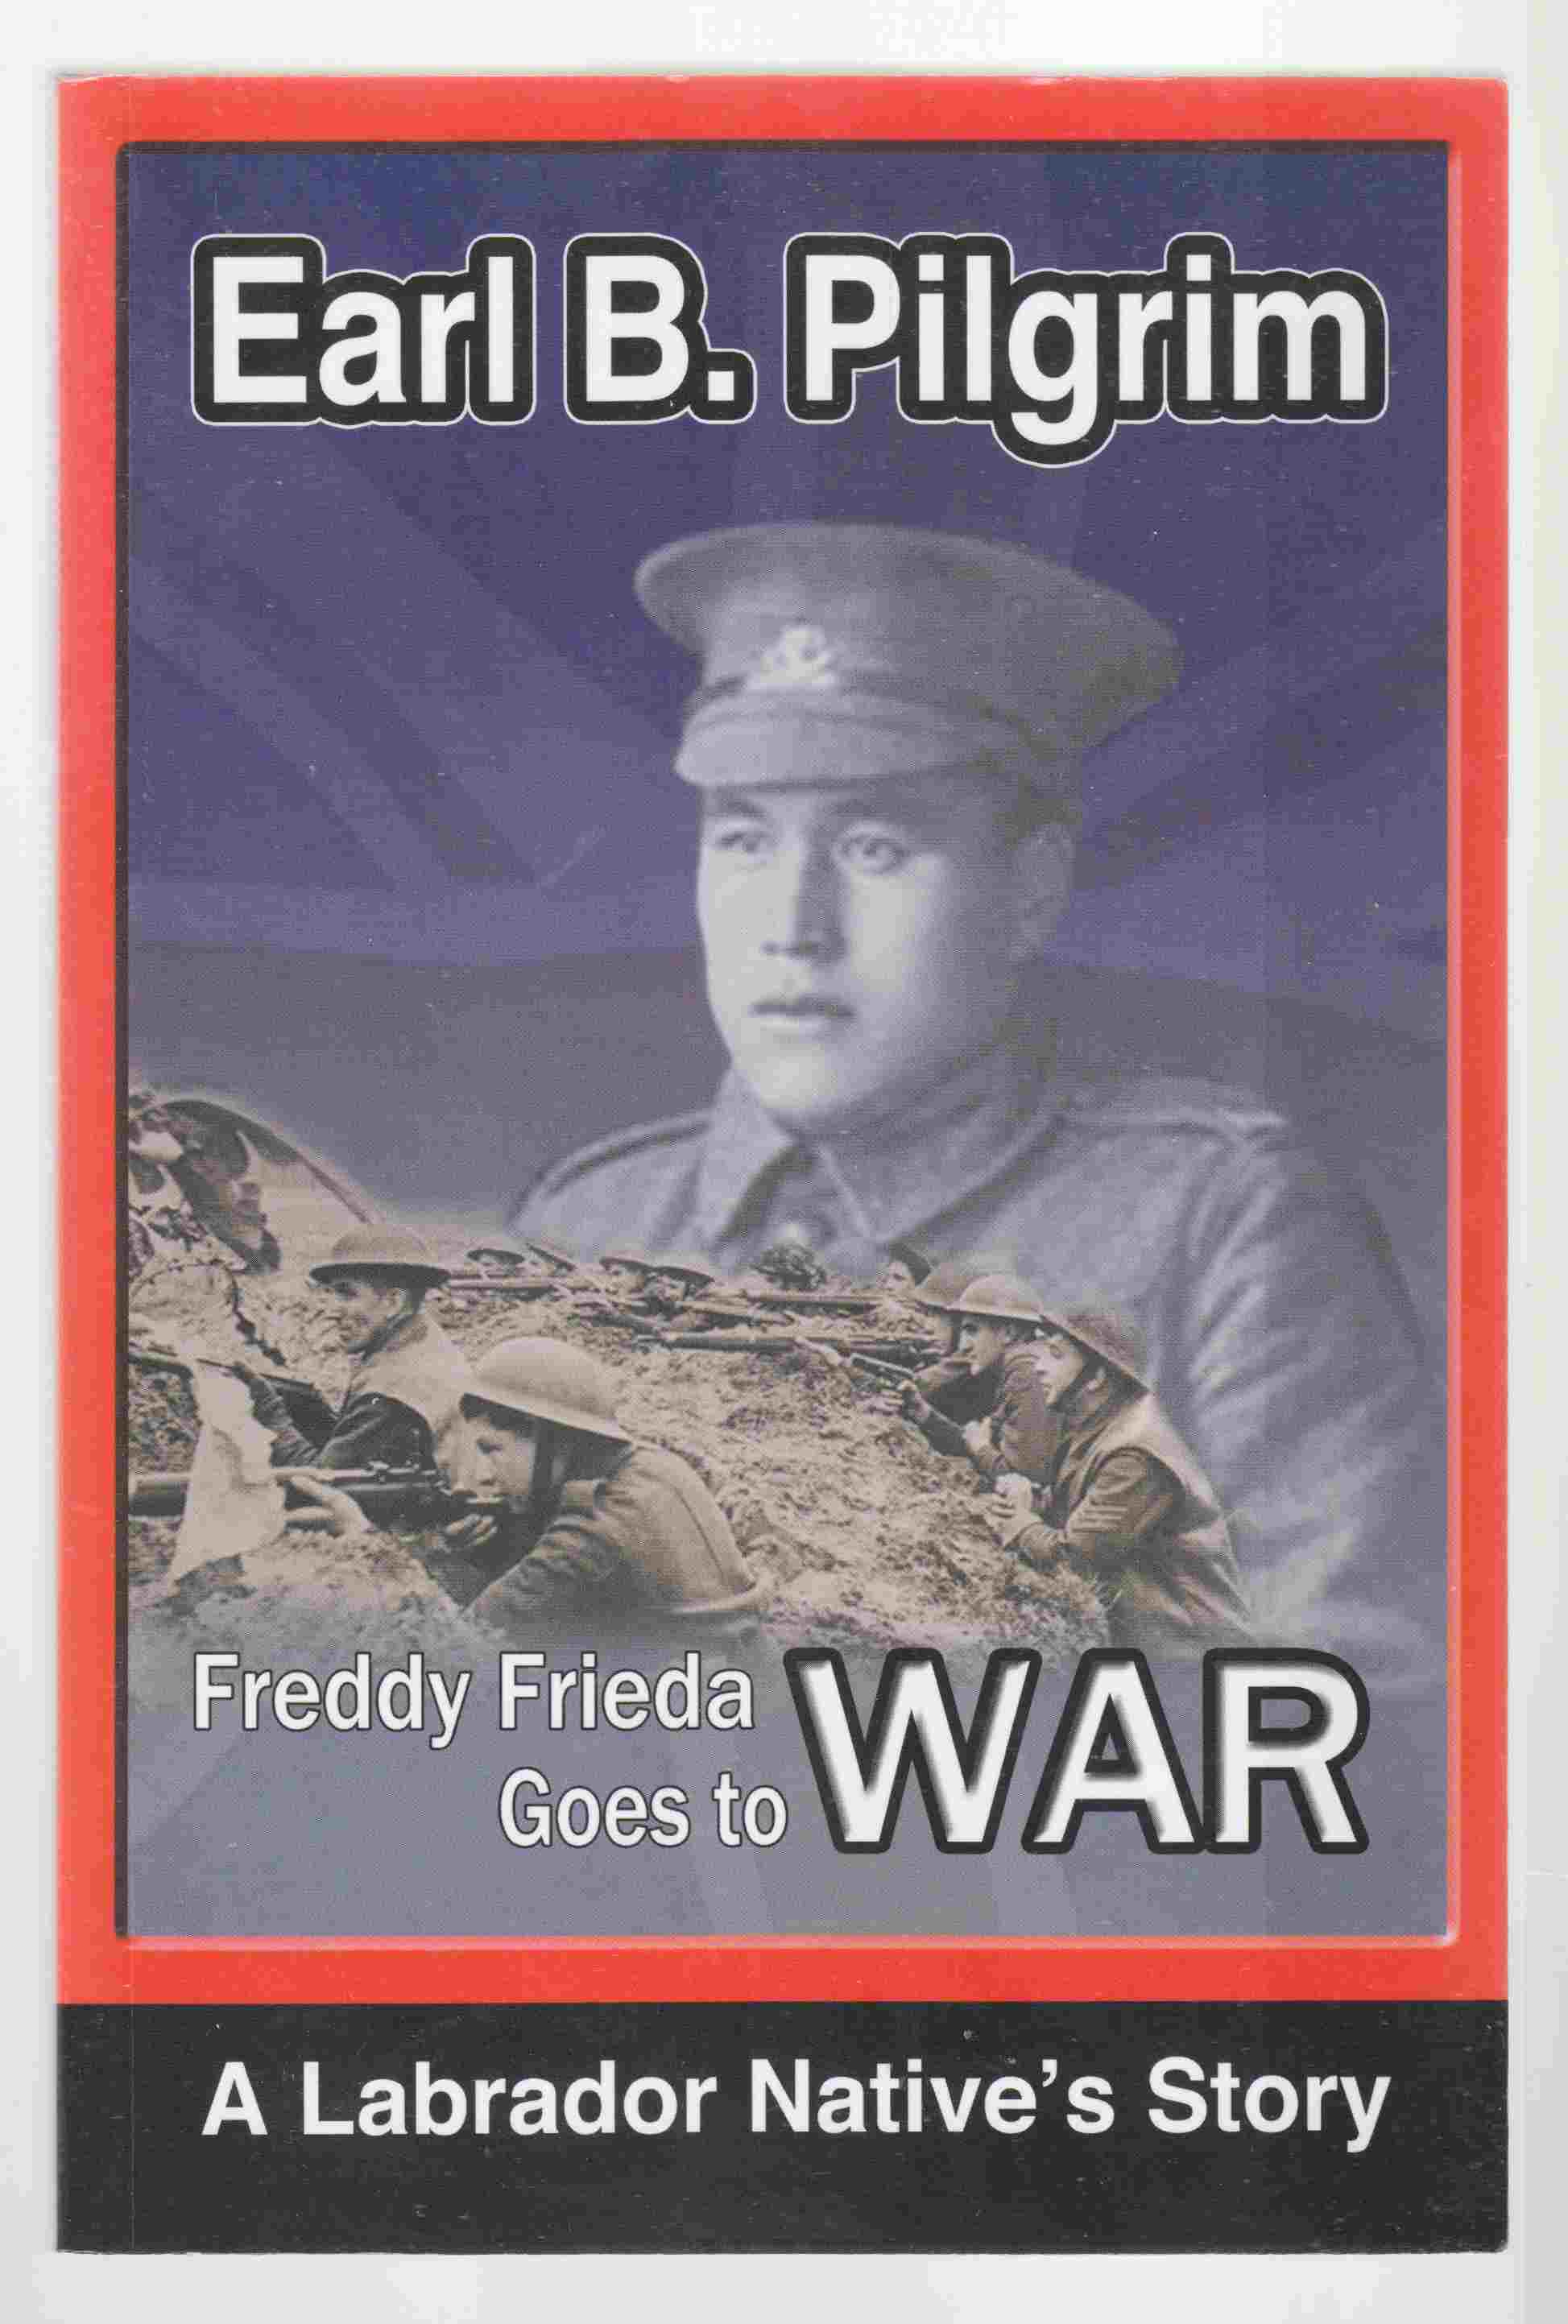 Image for Freddy Freida Goes to War A Labrador Native's Story